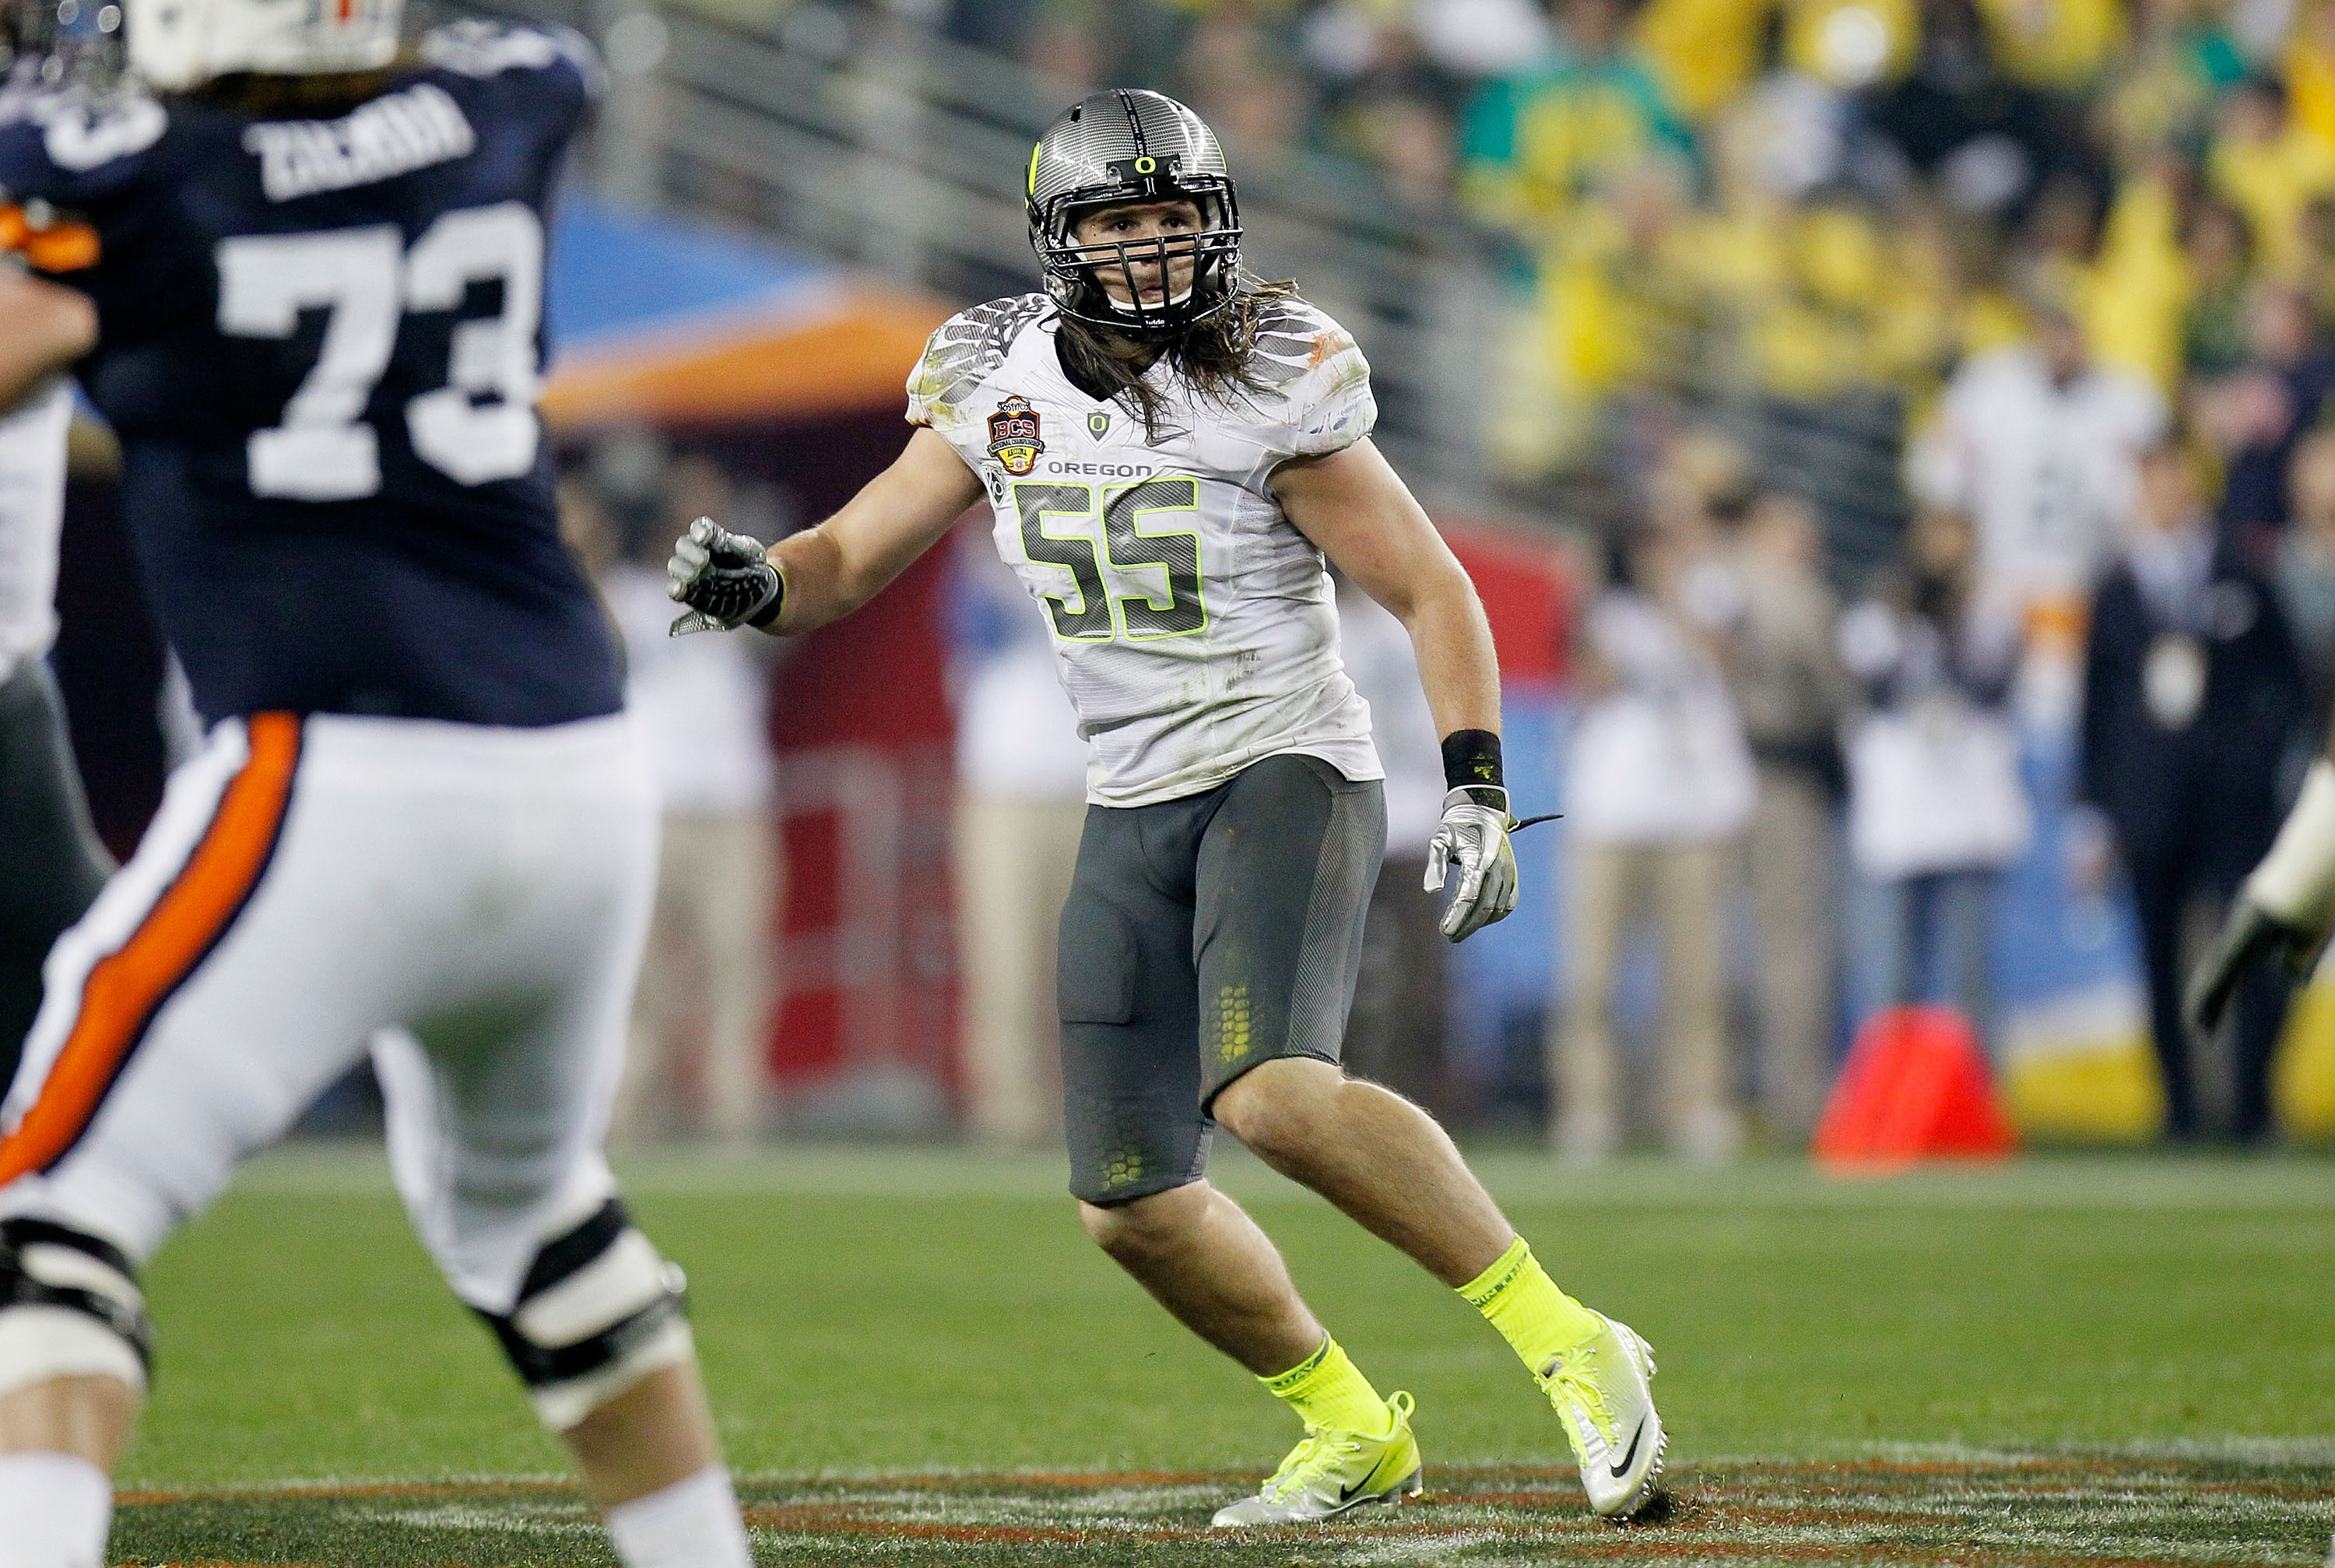 Casey Matthews needs to prove to scouts he can be everything and more that his brother is